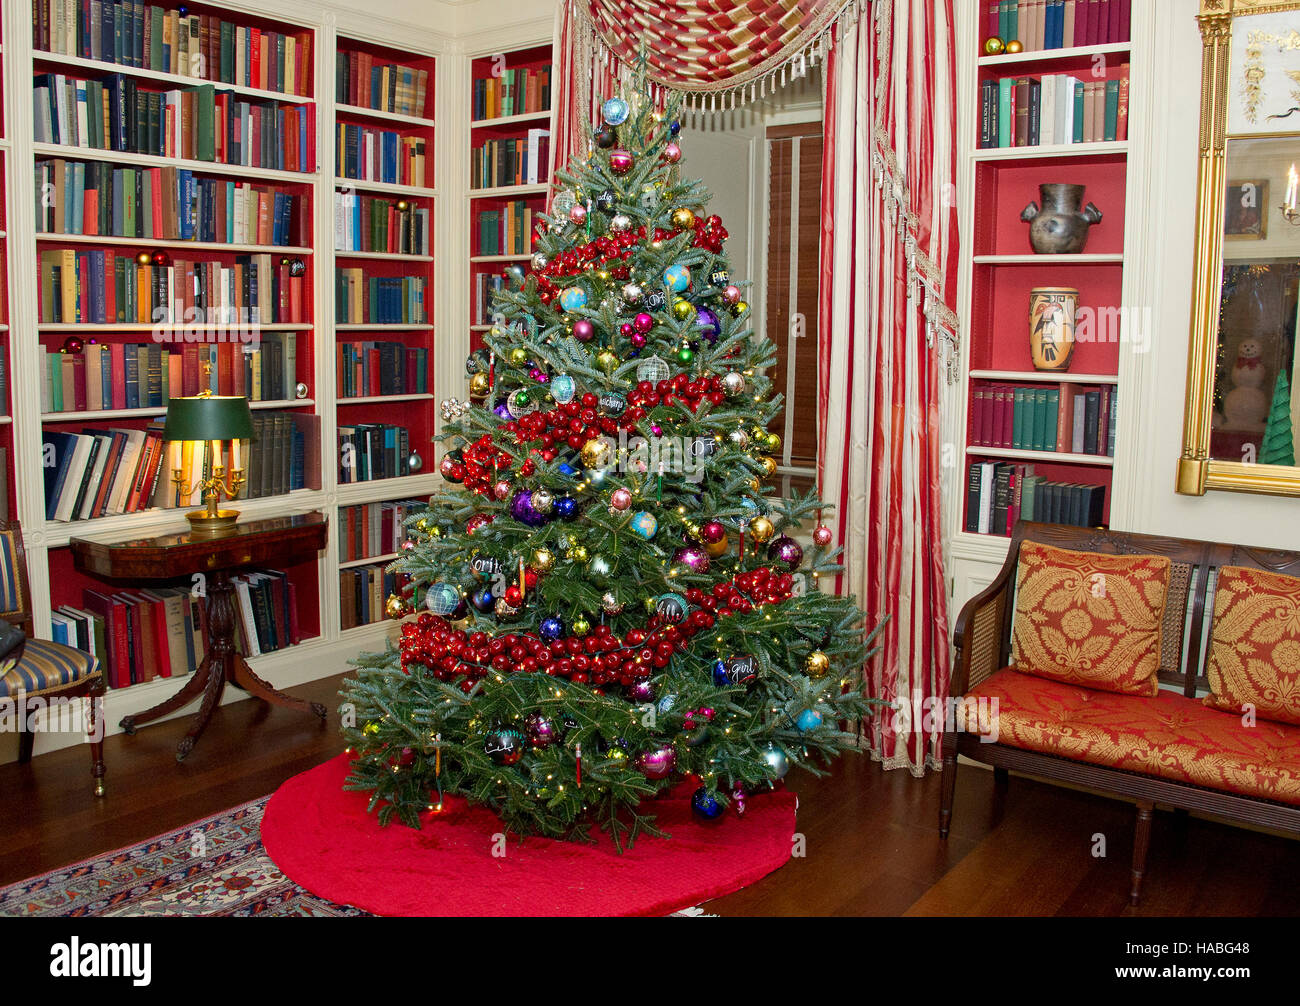 the 2016 white house christmas decorations are previewed for the press at the white house in washington dc on tuesday november 29 2016